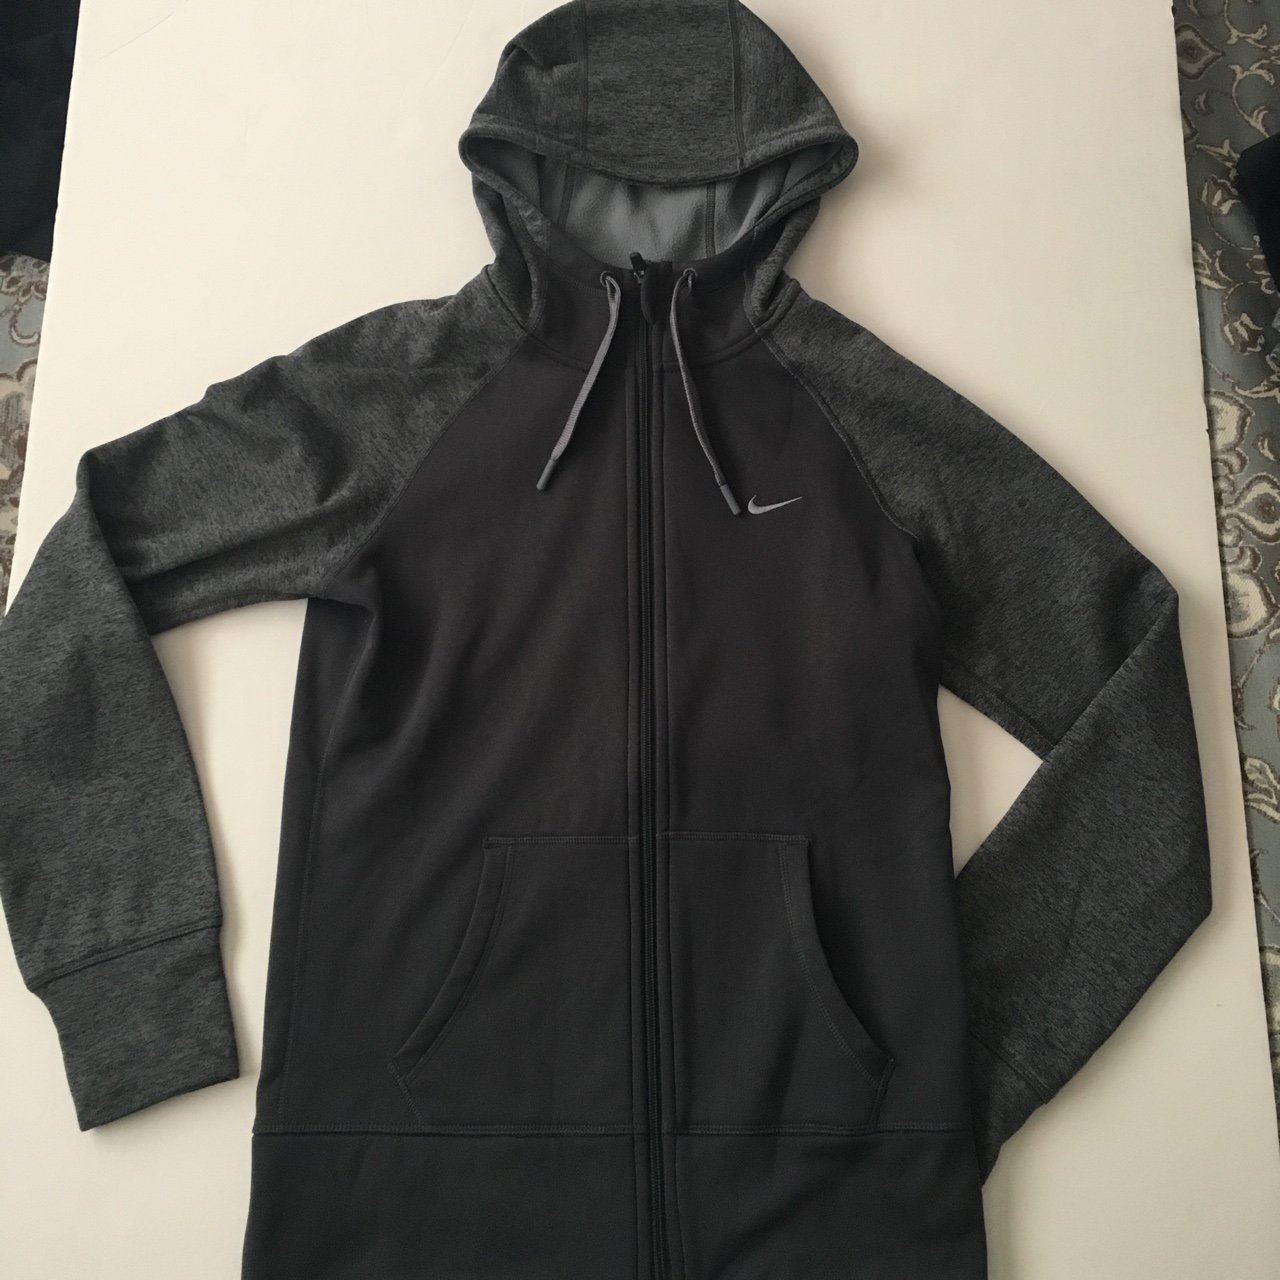 Women s Nike Dri-Fit hoodie. Size small. Worn a couple but - Depop 6d68e4aafb